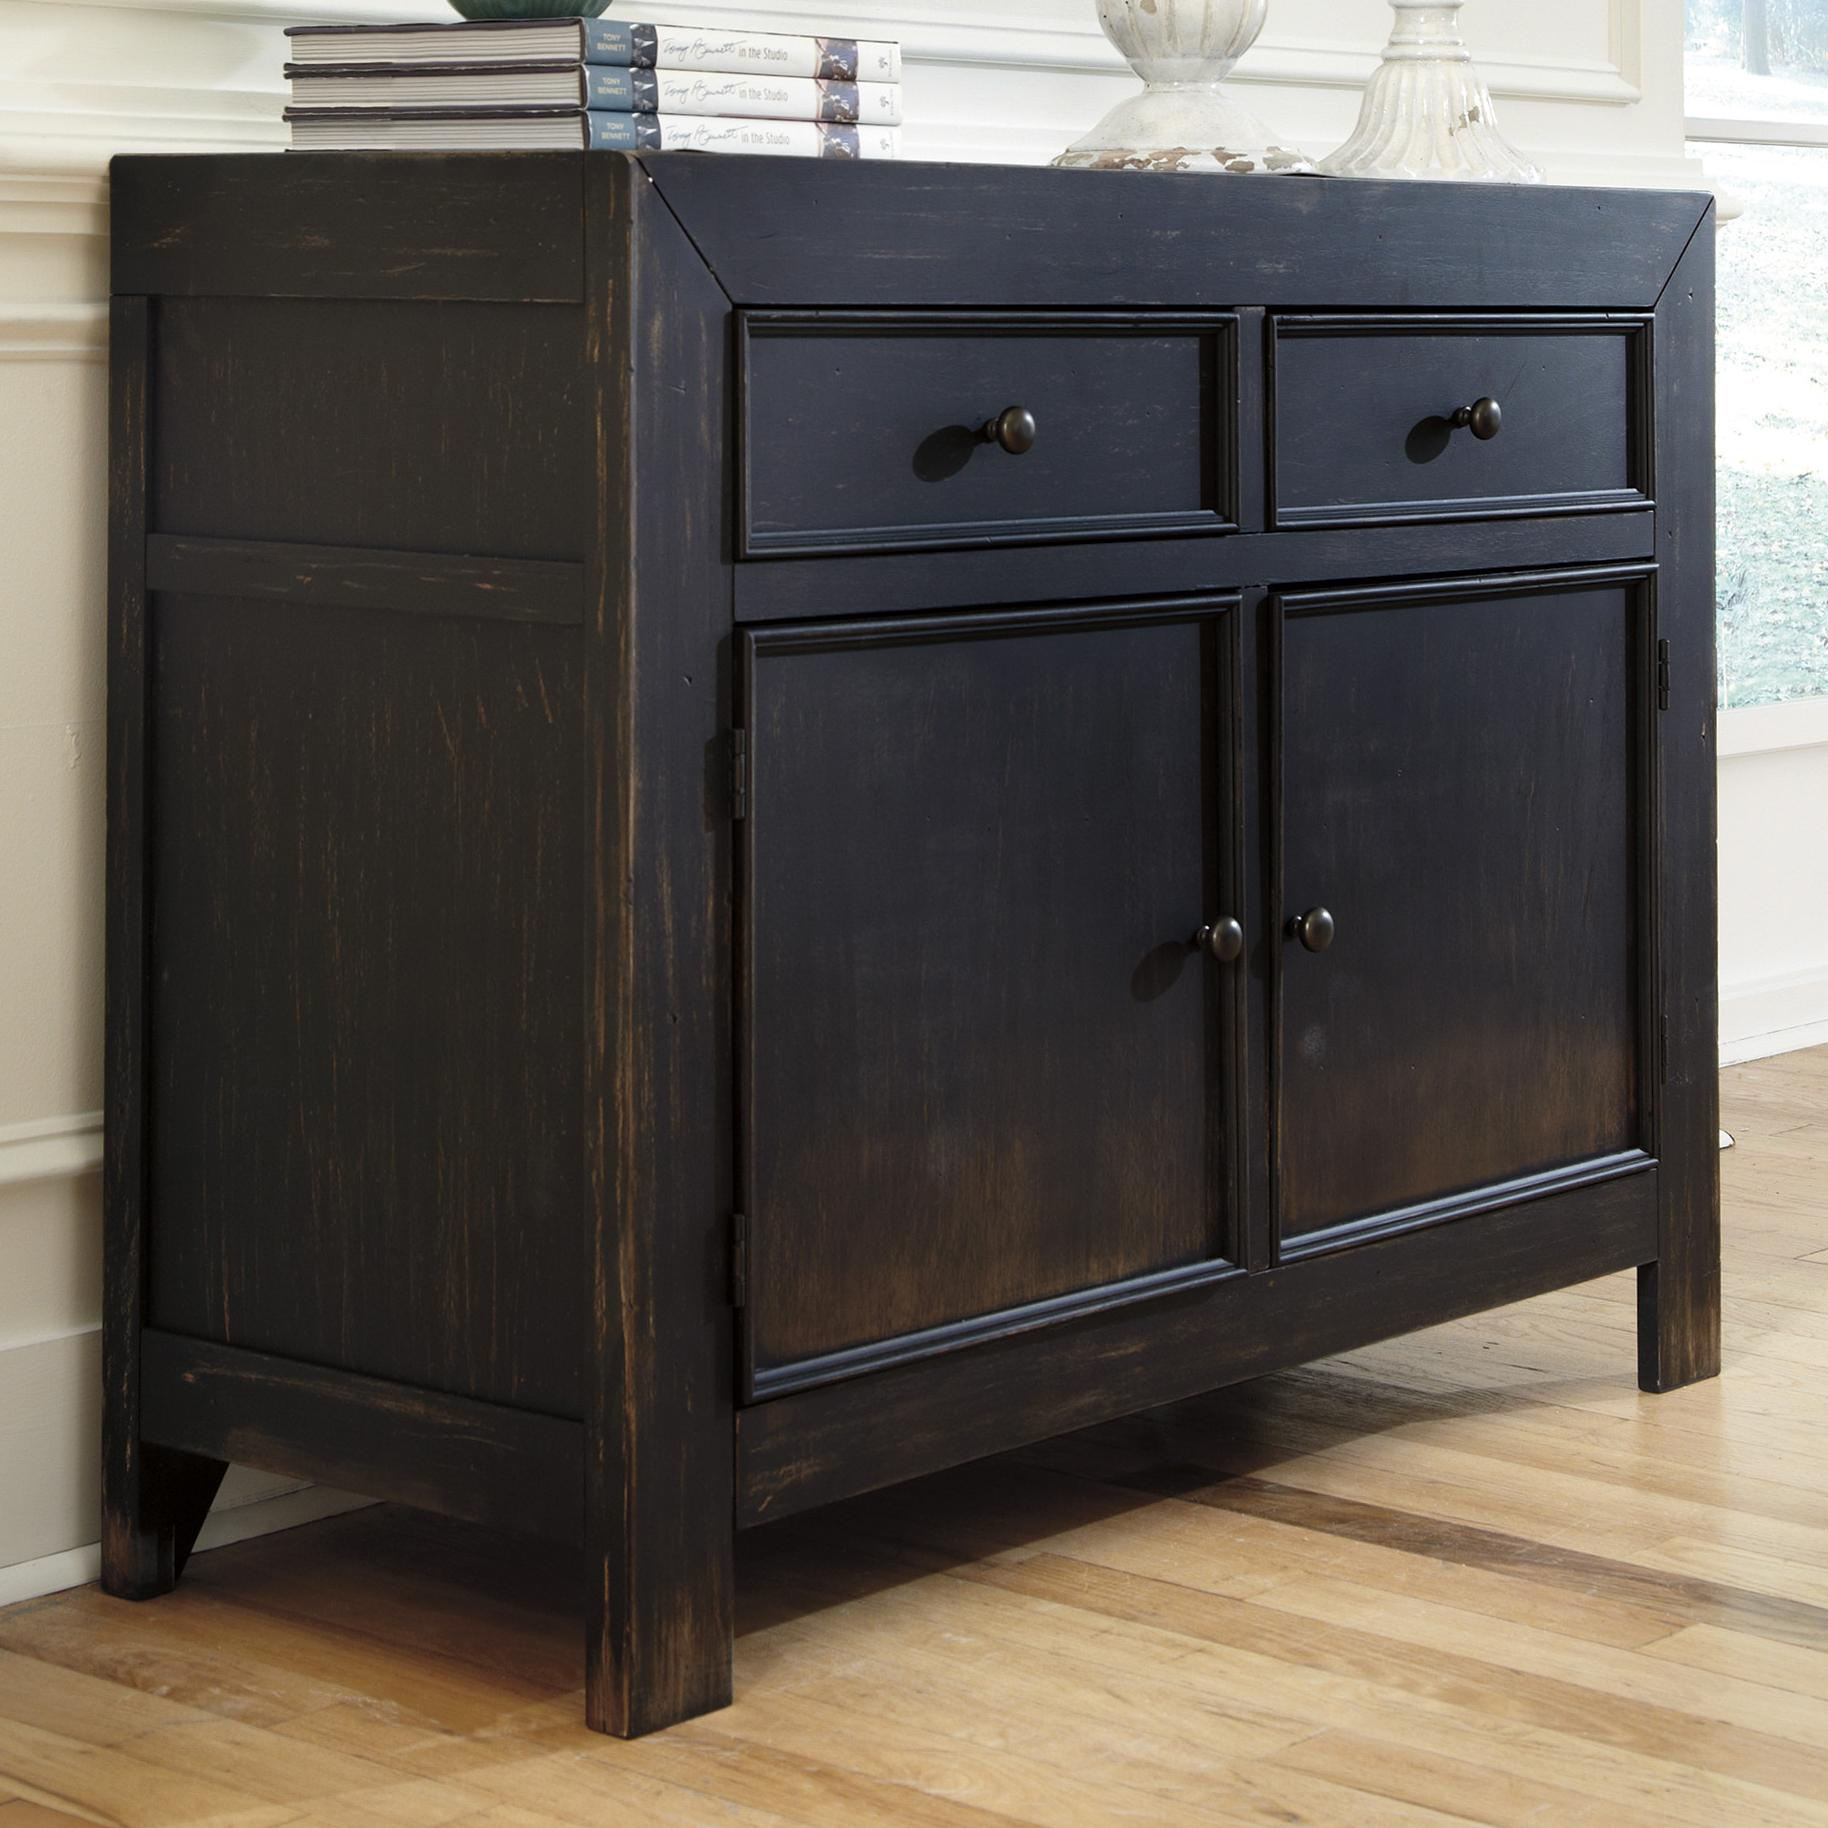 Merveilleux Distressed Black Accent Cabinet